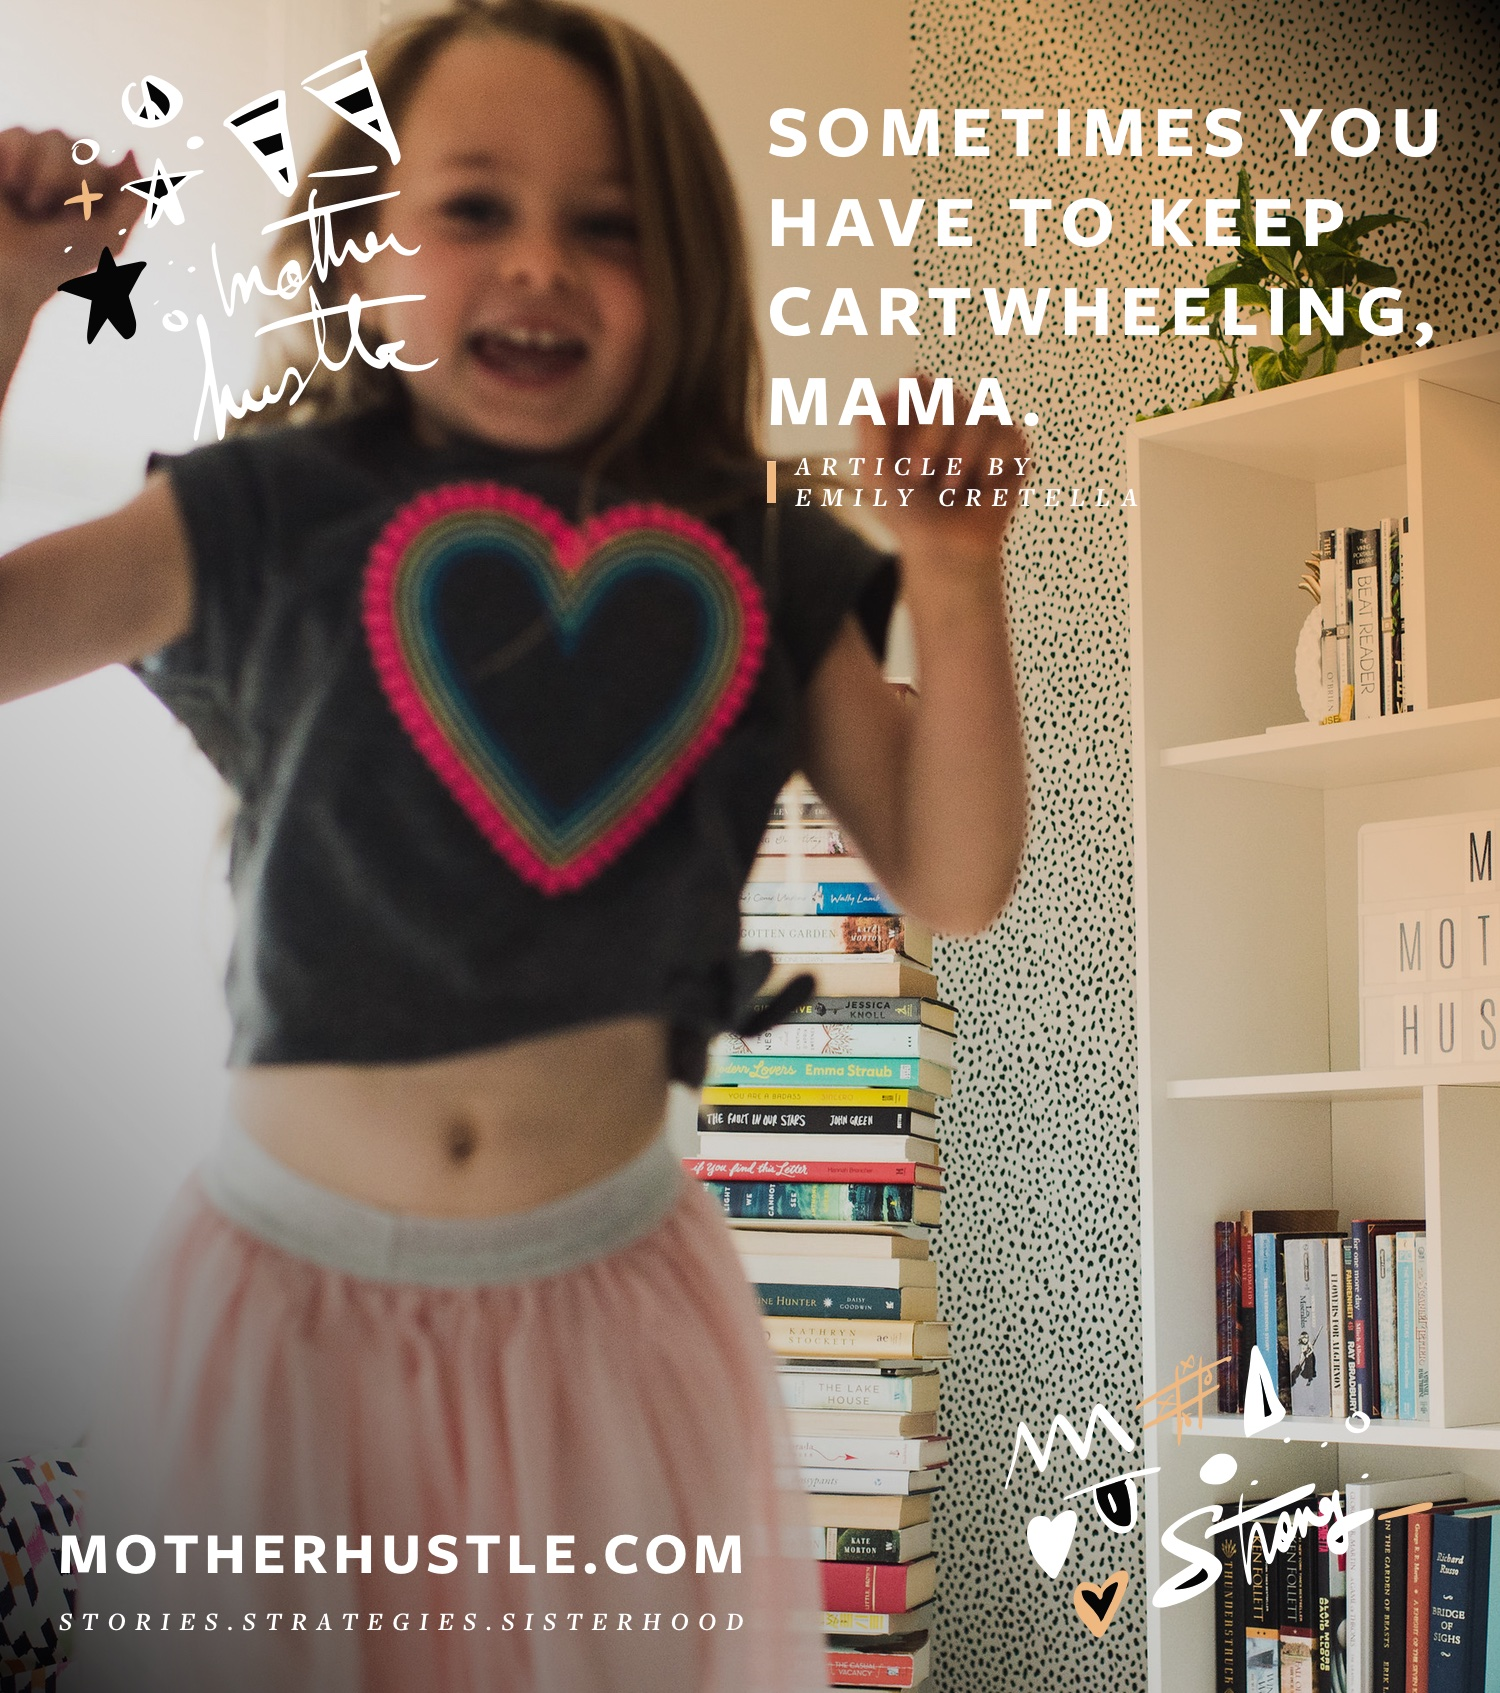 Sometimes You Just Have to Keep Cartwheeling, Mama. - by Emily Cretella for MotherHustle